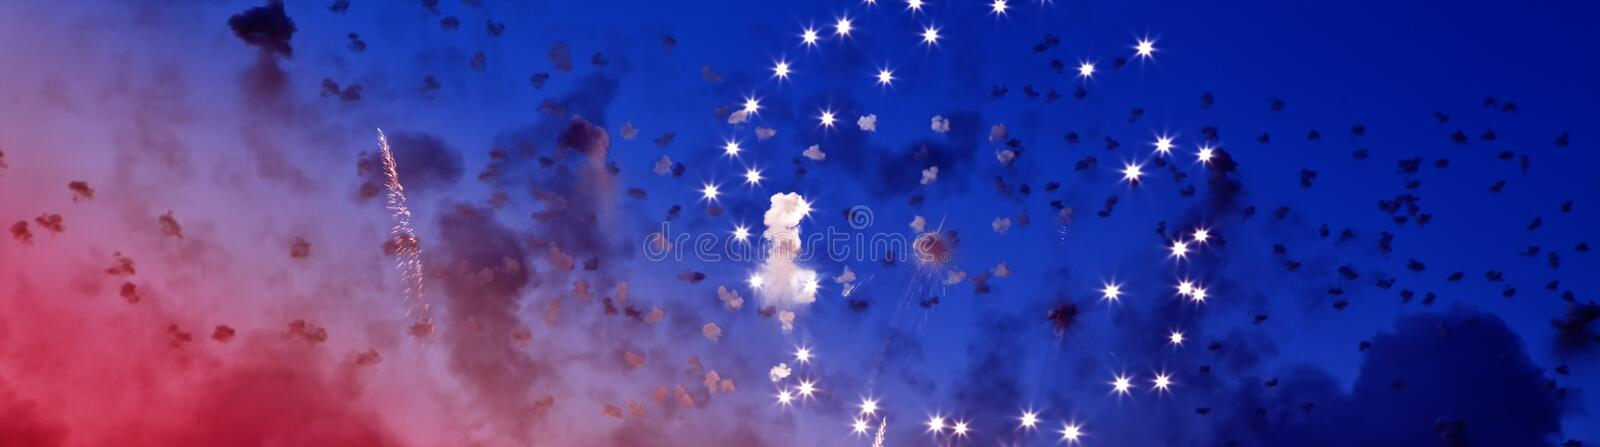 Star Spangled Banner. Fireworks over a deep blue sky symbolizing Independence Day in the USA stock photography